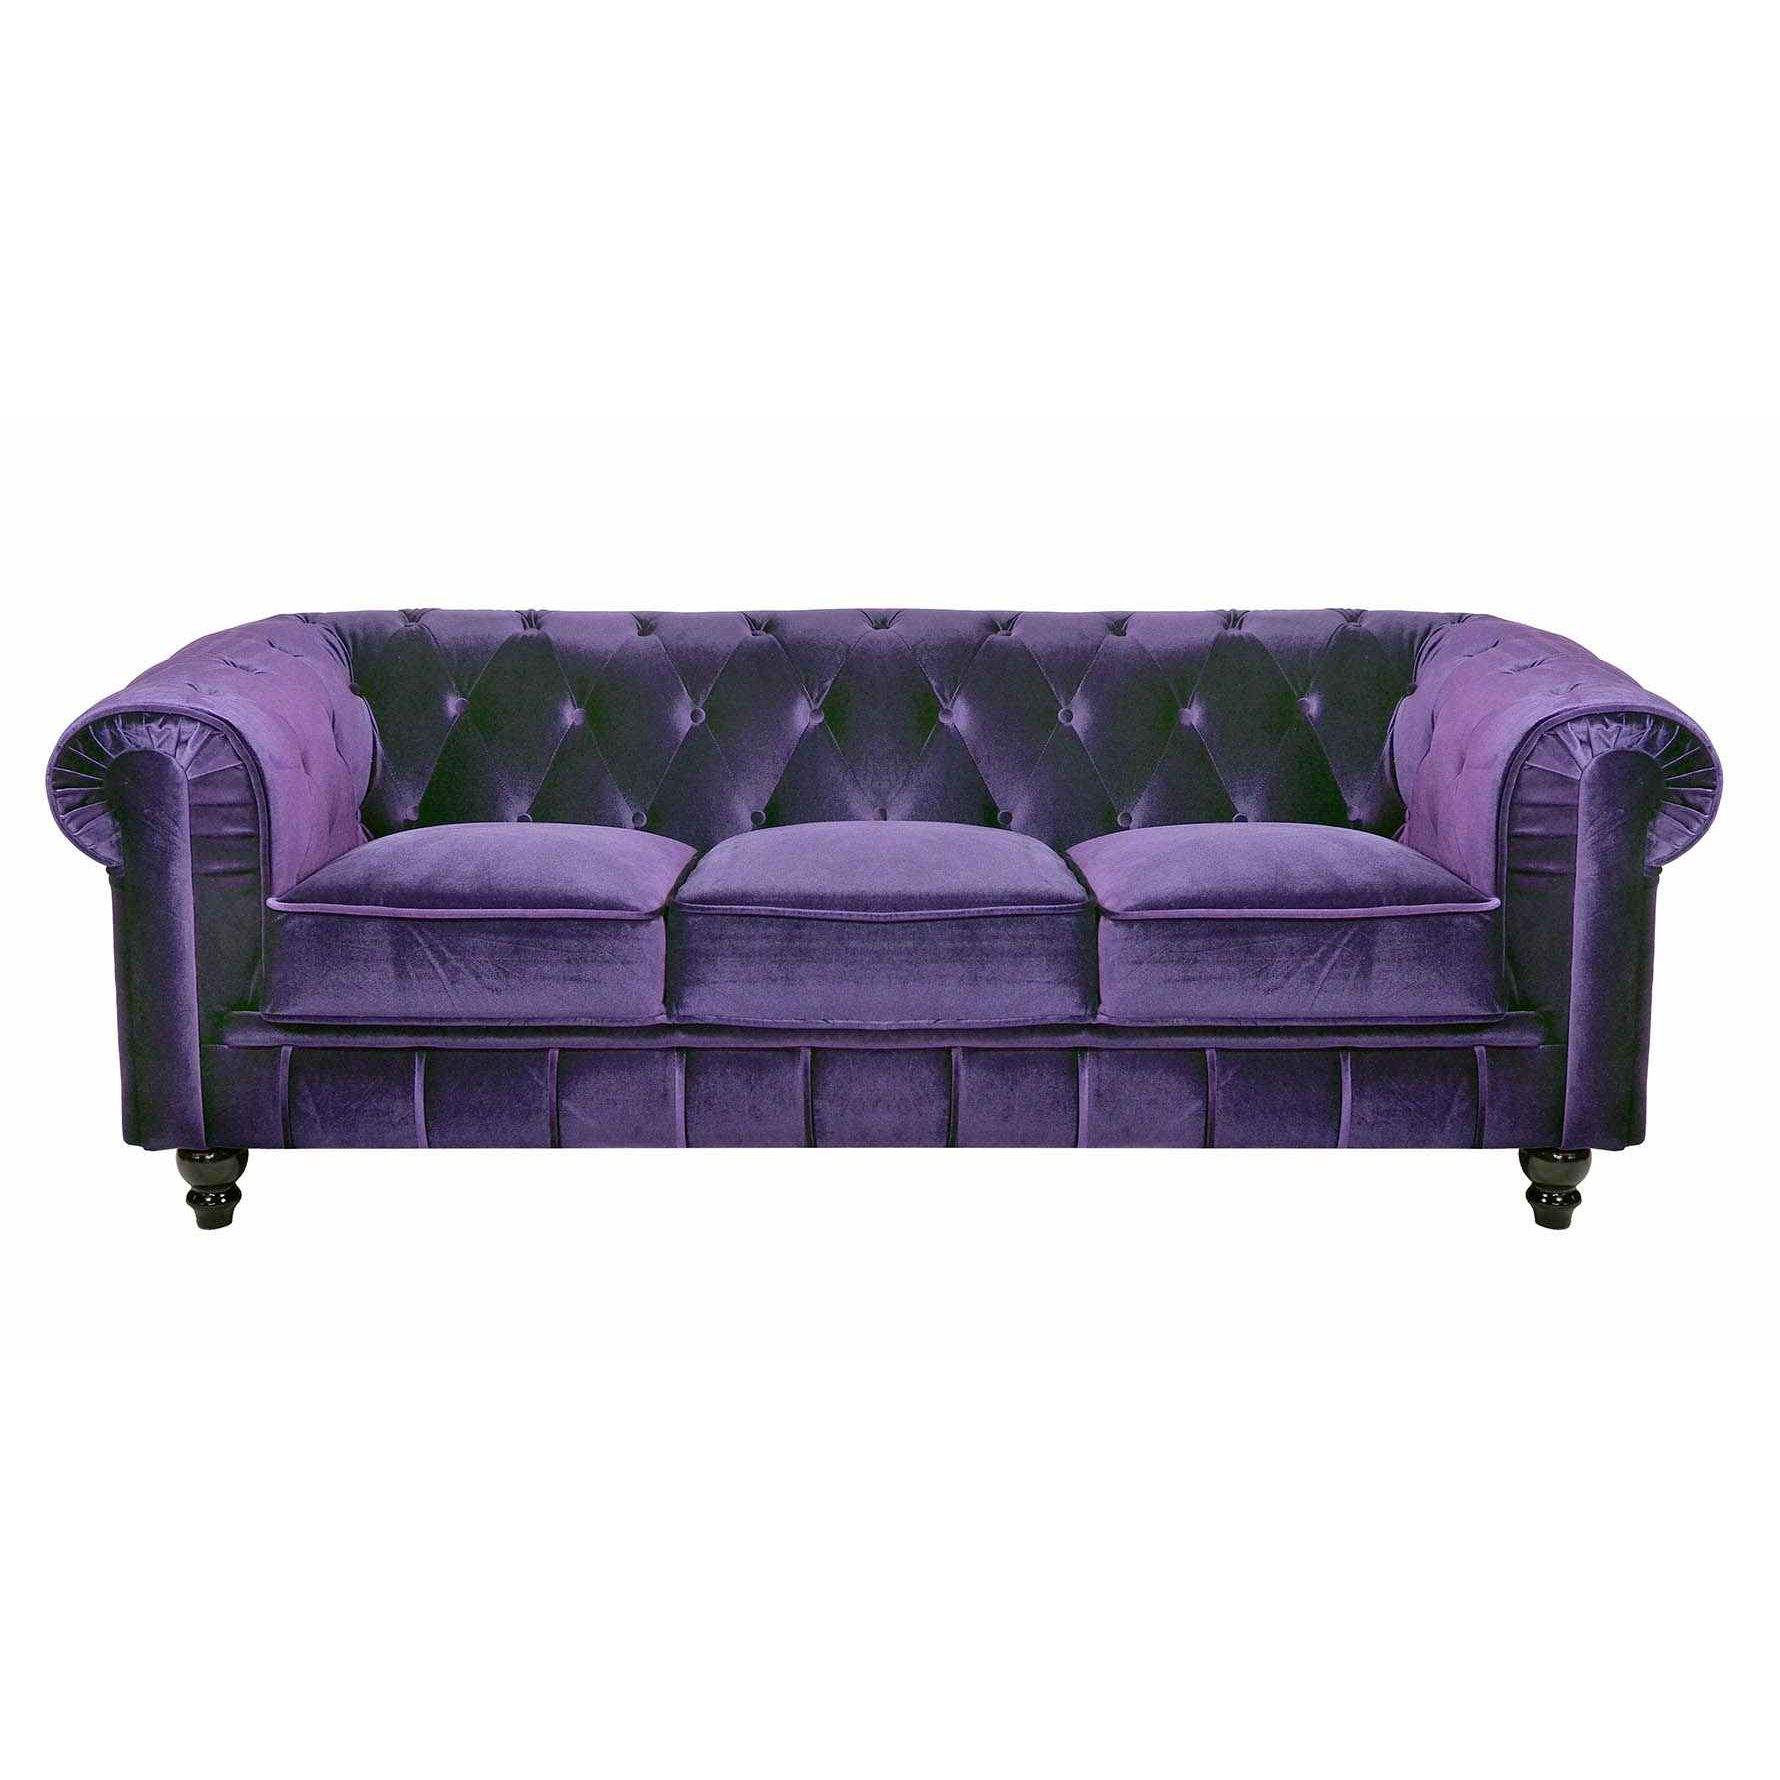 deco in paris canape 3 places velours violet chesterfield can chester 3p velours violet. Black Bedroom Furniture Sets. Home Design Ideas